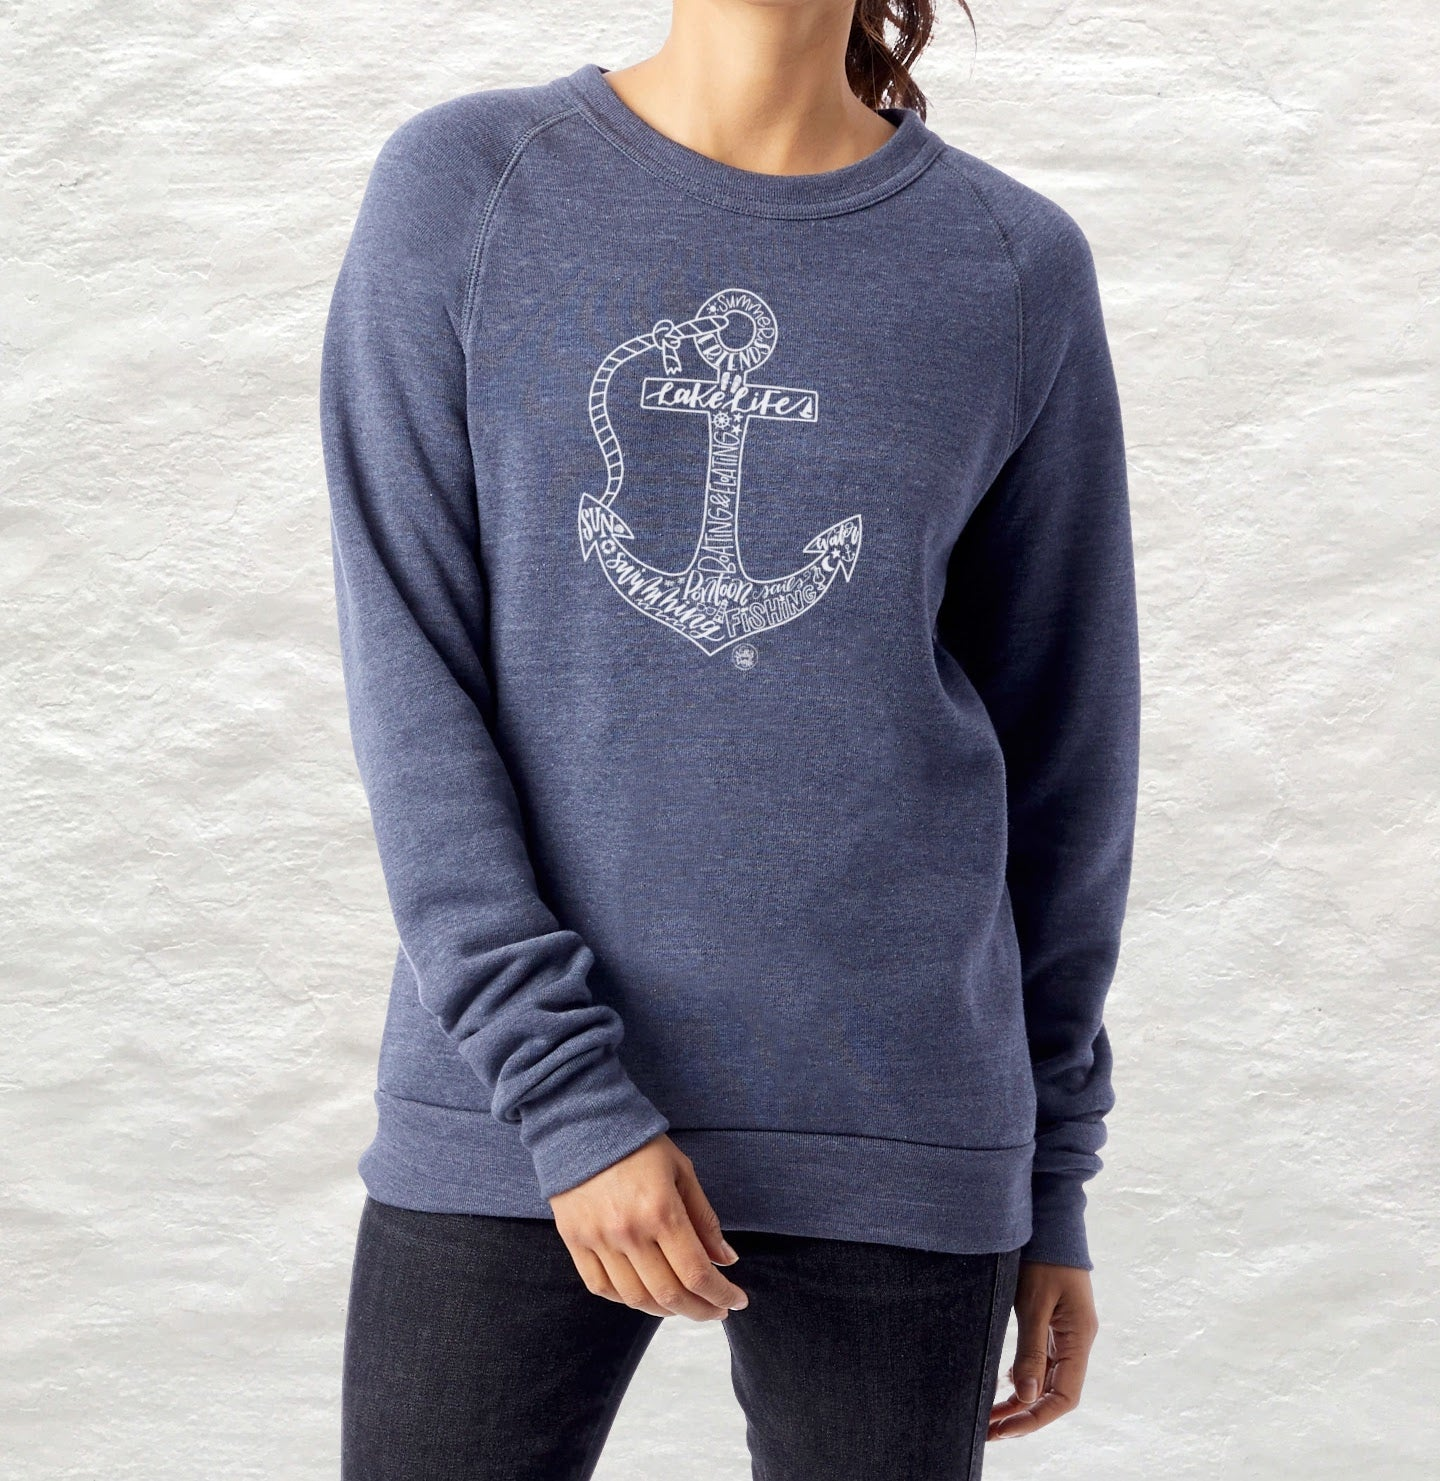 Lake Life Anchor Fleece Sweatshirt